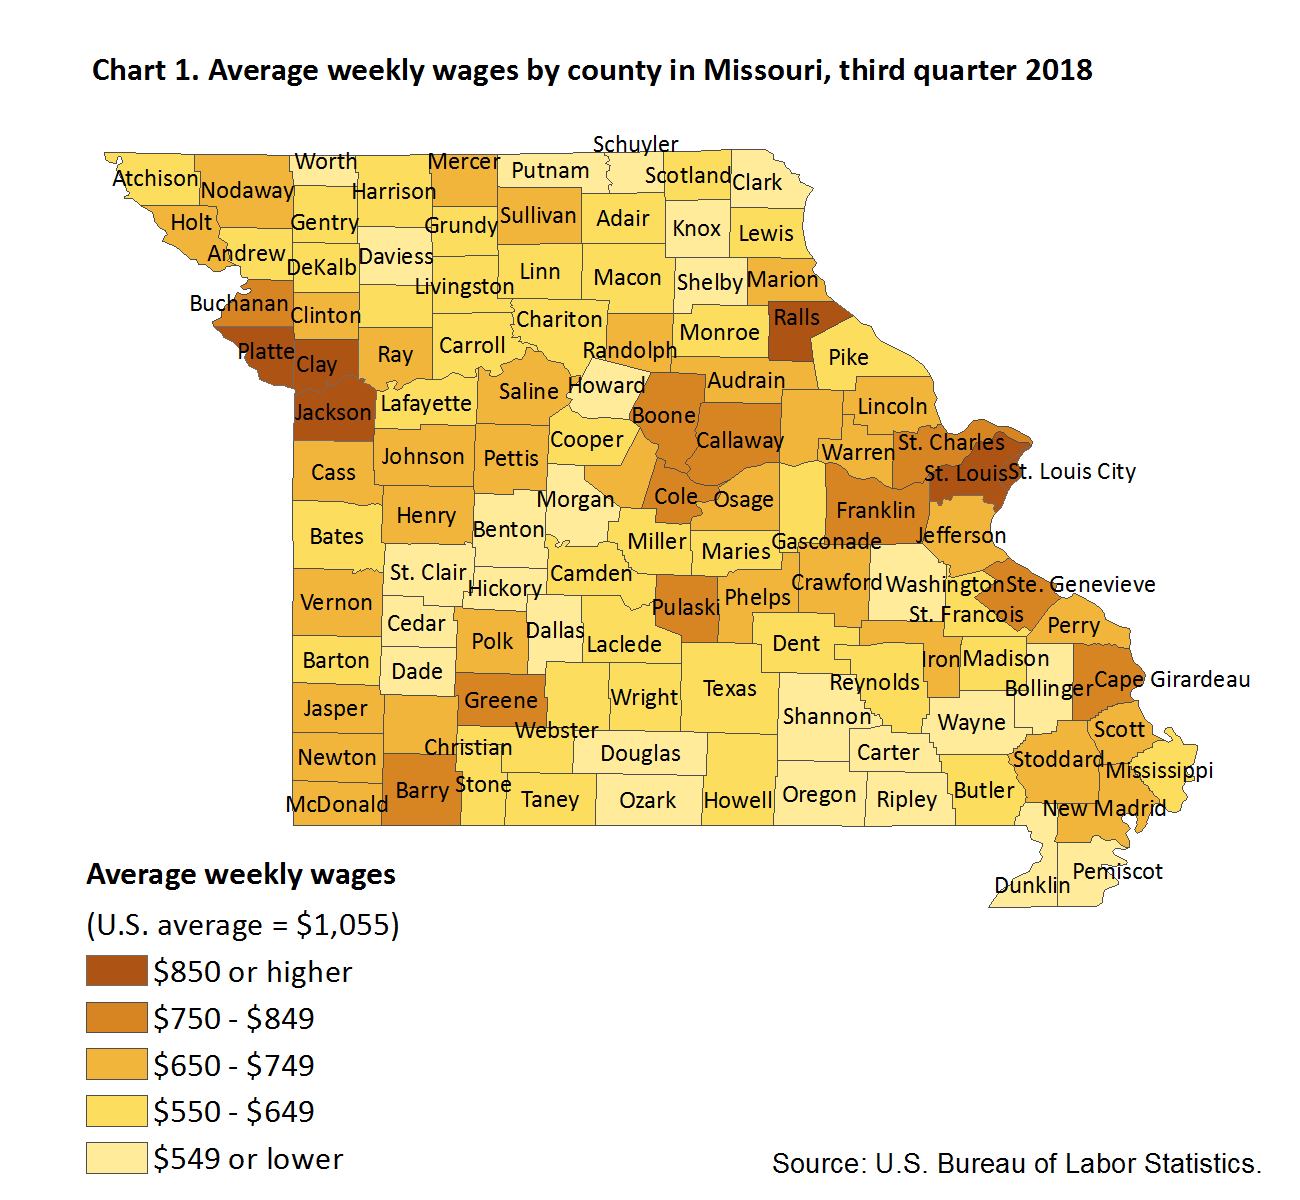 Chart 1. Average weekly wages by county in Missouri, third quarter 2018